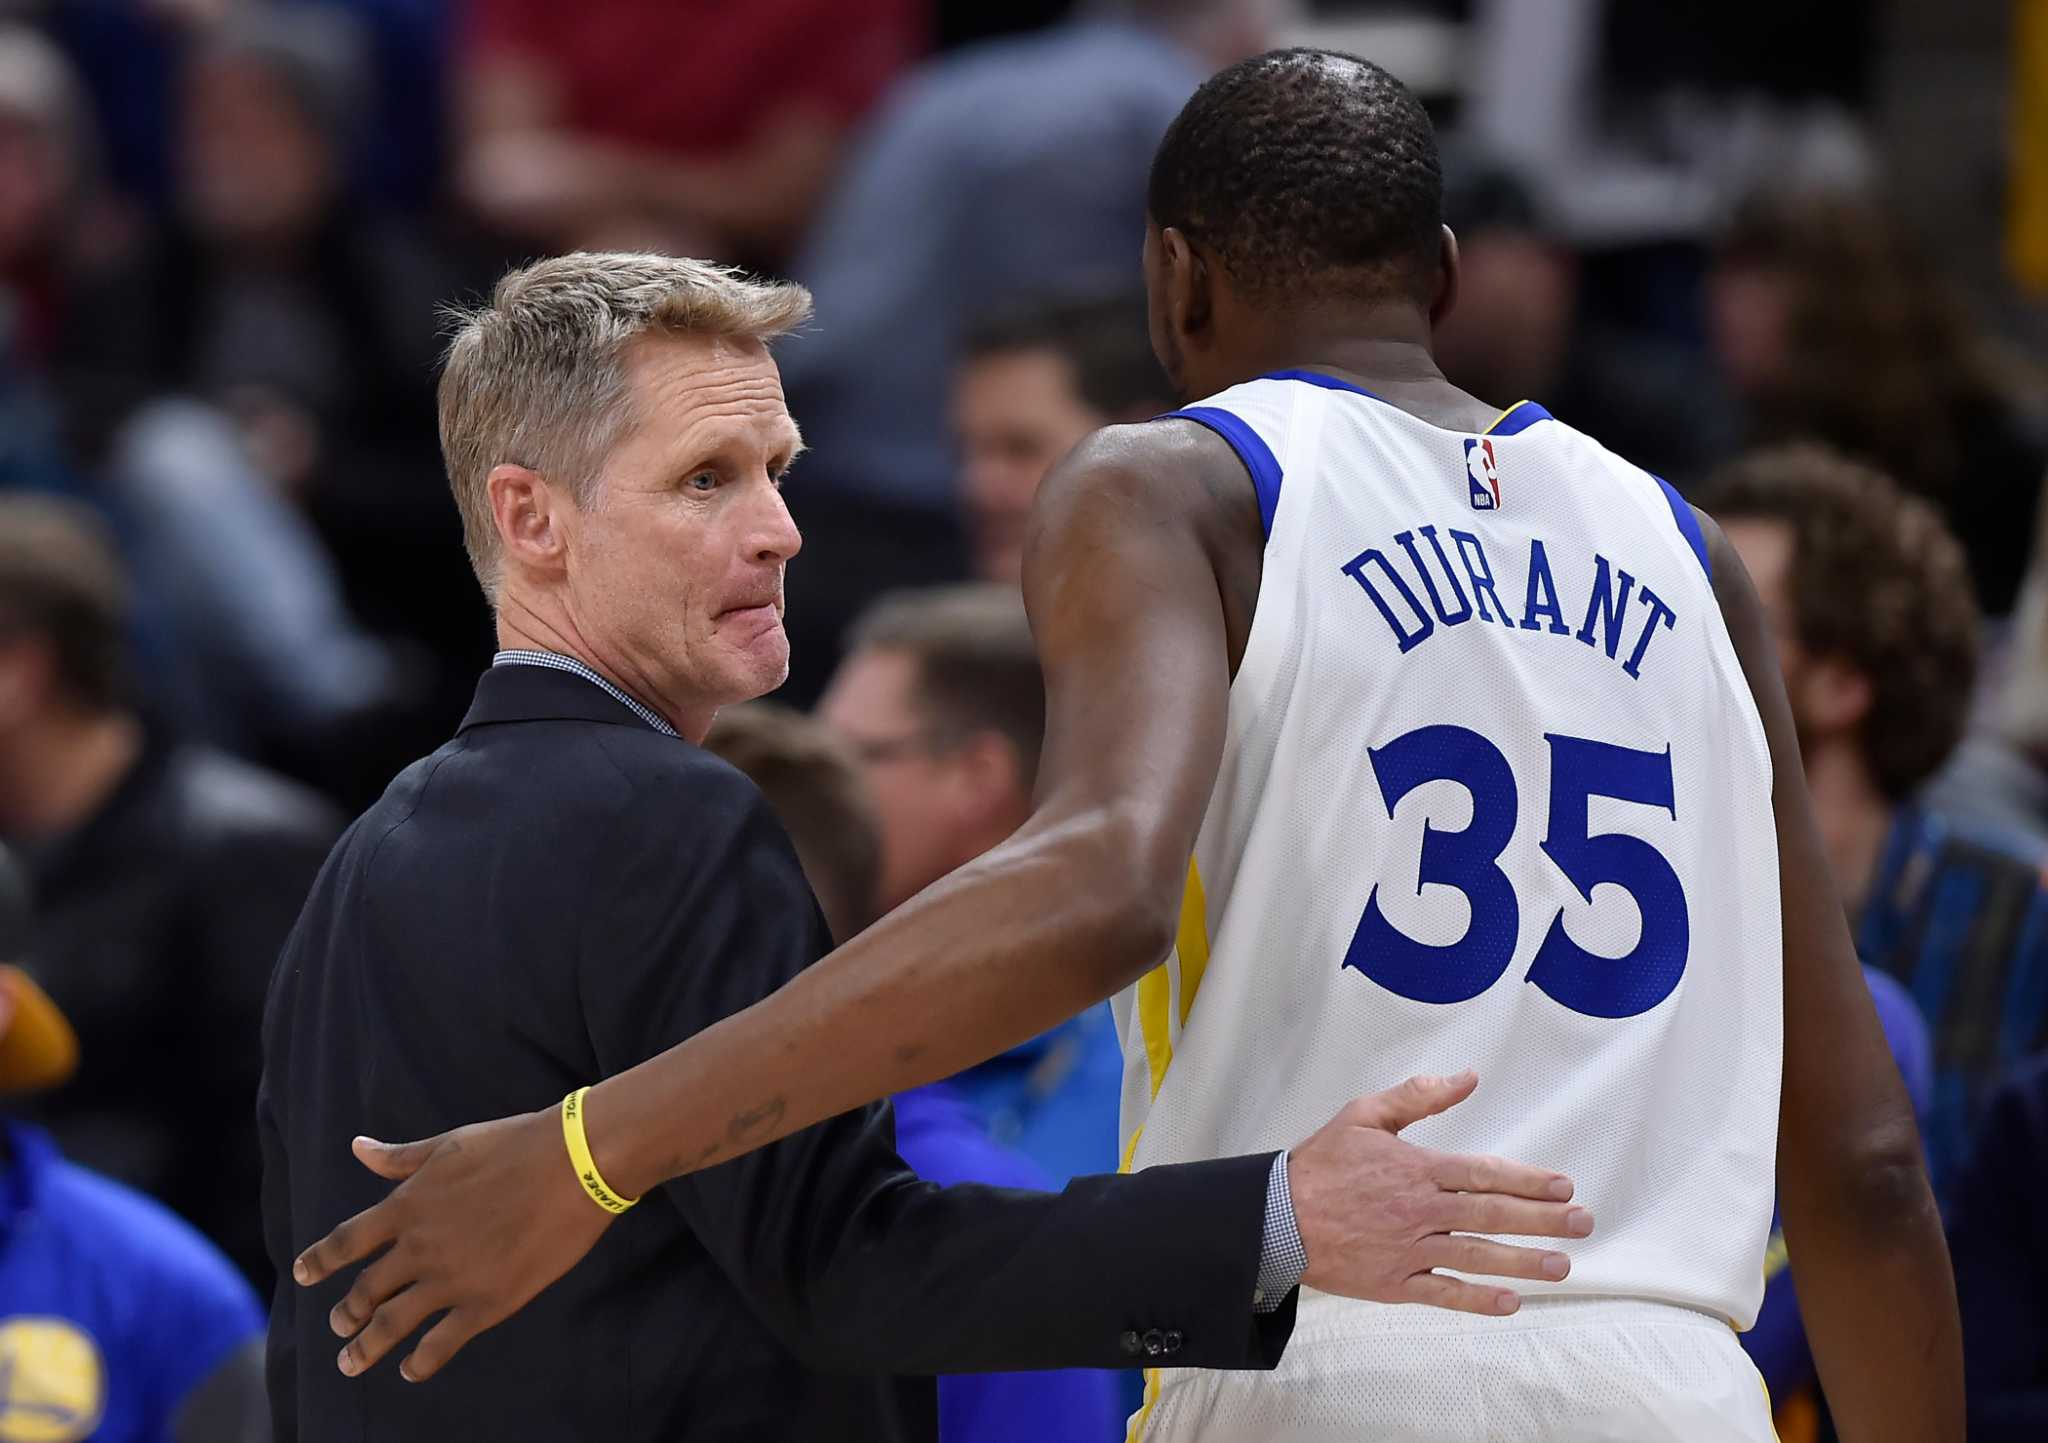 f57b6cf2f71e Poor ball movement dooms Warriors in loss to Jazz - SFGate